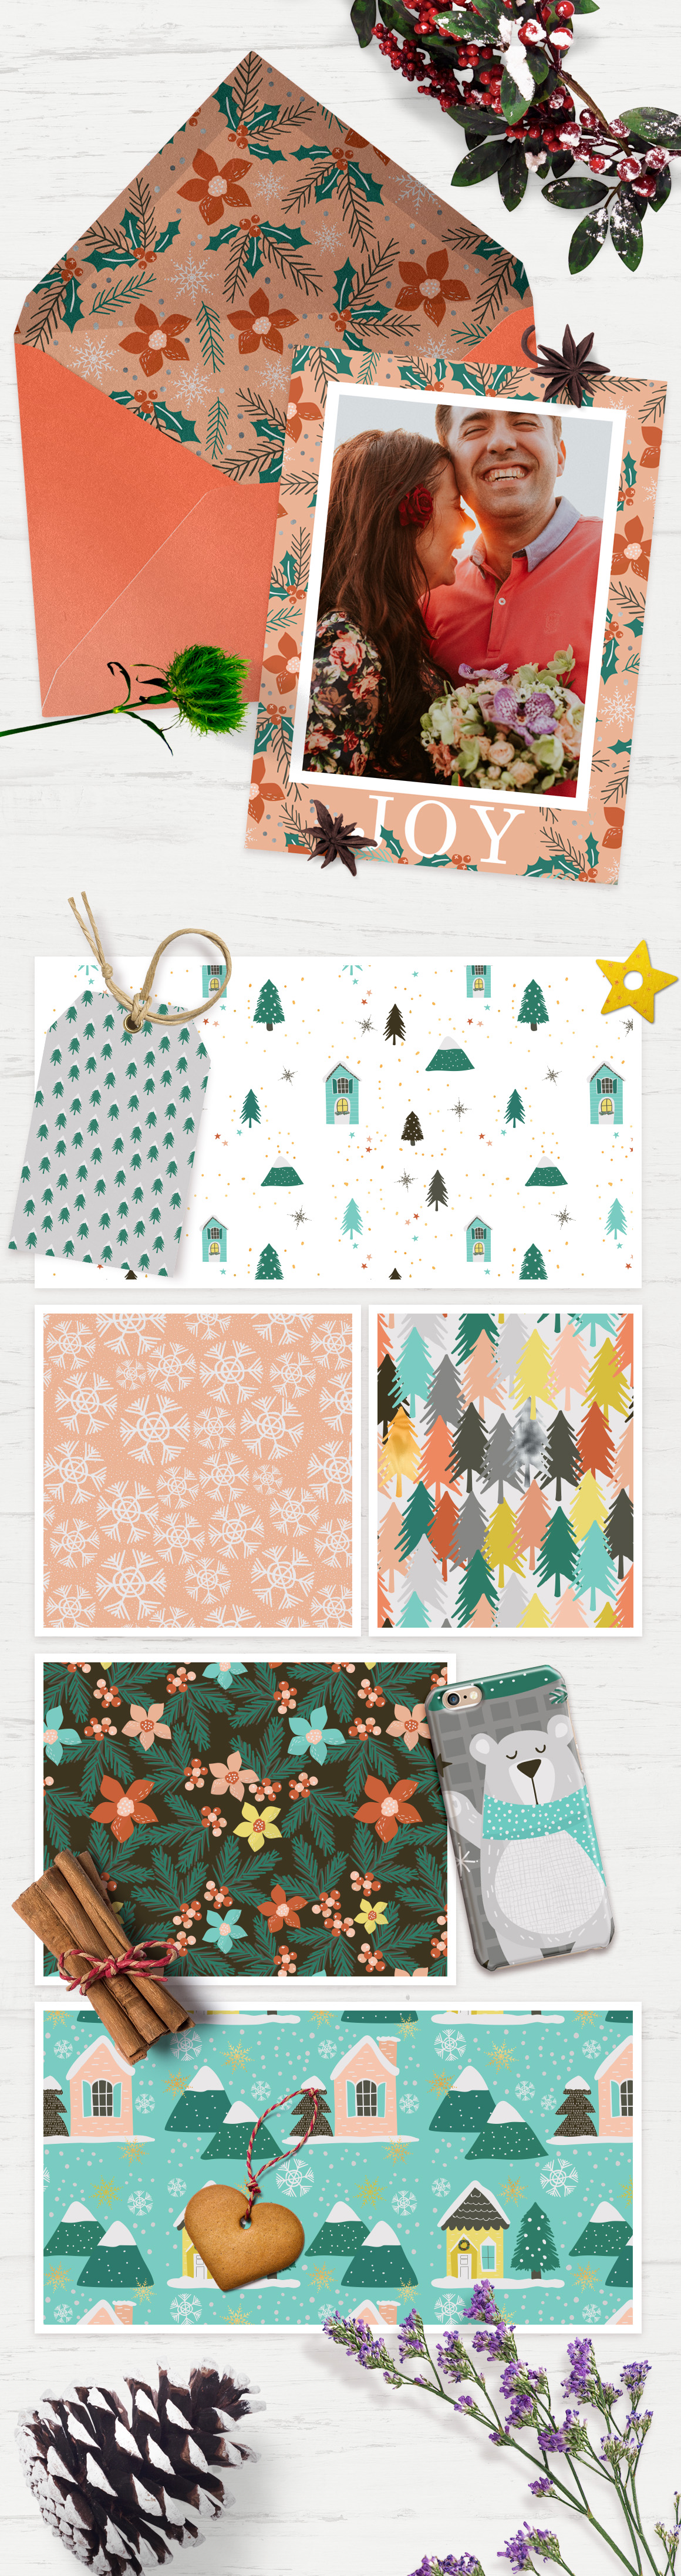 Sweet Christmas Collections example image 3